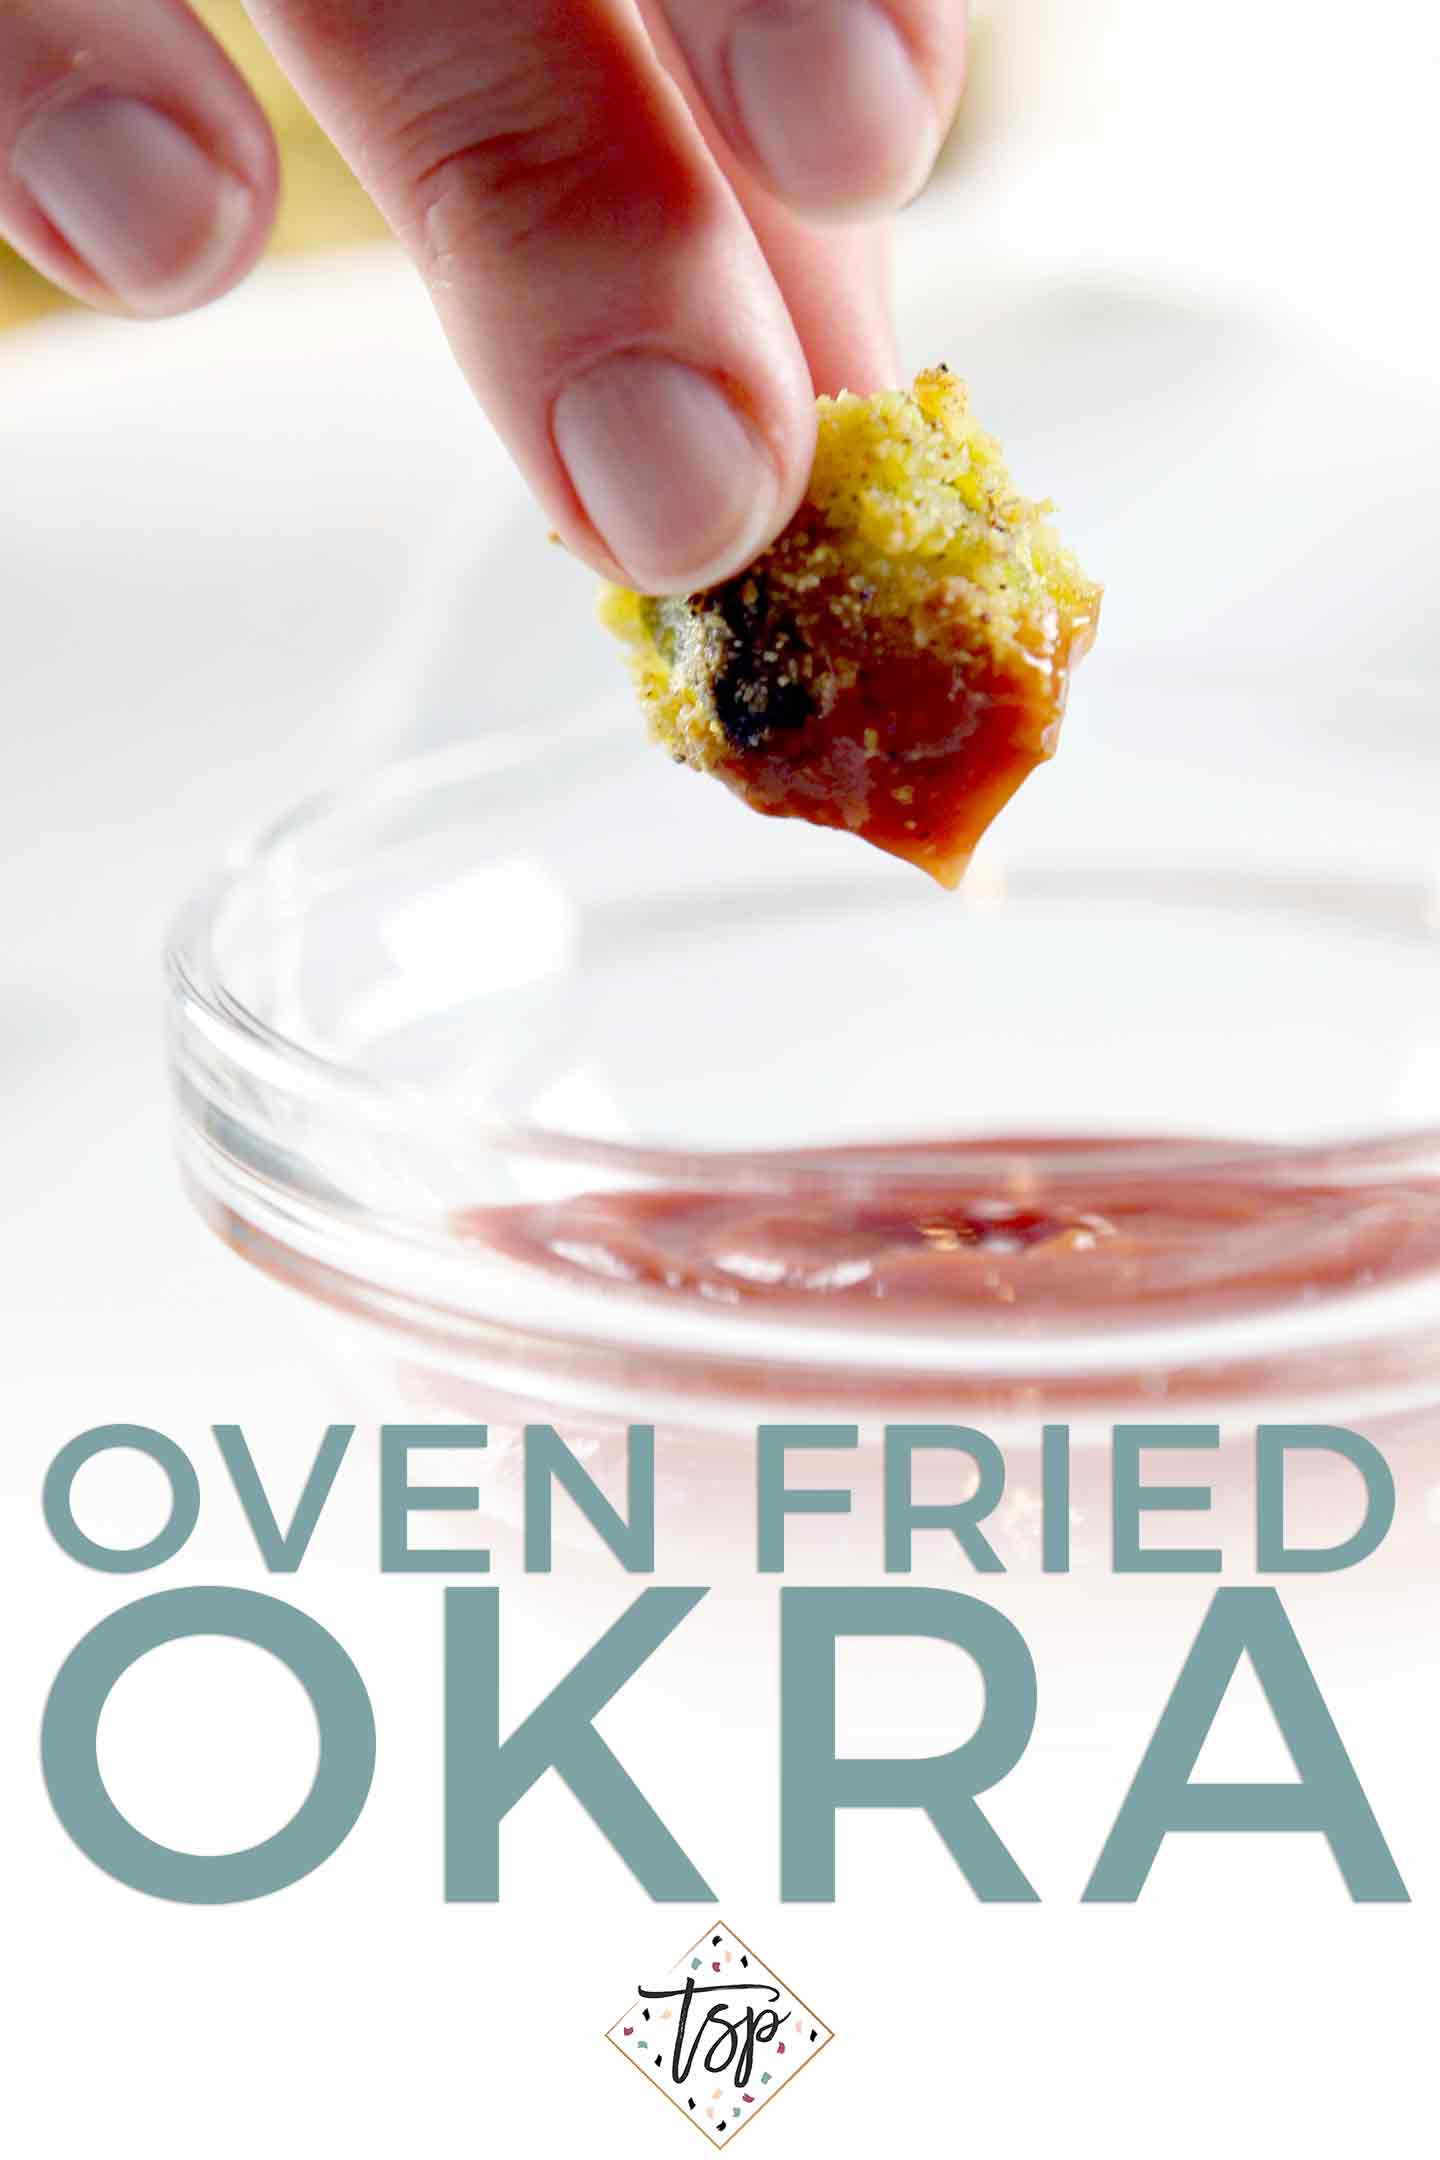 A woman dips a piece of Oven Fried Okra in a small glass bowl of ketchup before eating.